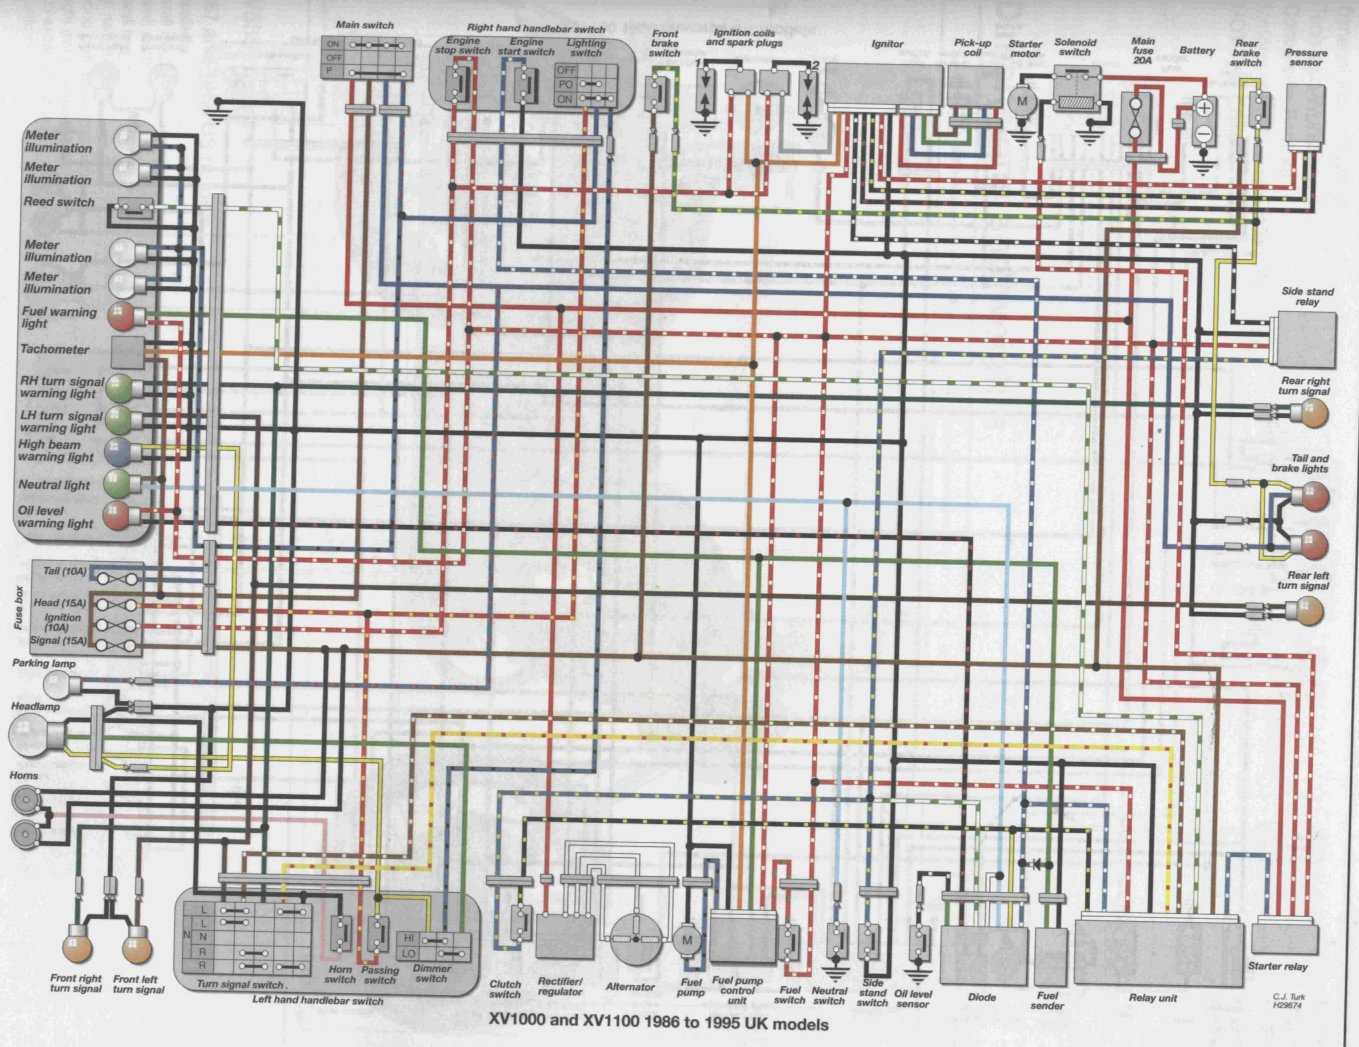 86_95_uk_XV1000_XV1100 Xv Wiring Diagram on motor diagrams, electronic circuit diagrams, hvac diagrams, transformer diagrams, pinout diagrams, smart car diagrams, engine diagrams, honda motorcycle repair diagrams, sincgars radio configurations diagrams, gmc fuse box diagrams, lighting diagrams, series and parallel circuits diagrams, battery diagrams, electrical diagrams, led circuit diagrams, switch diagrams, friendship bracelet diagrams, internet of things diagrams, troubleshooting diagrams,